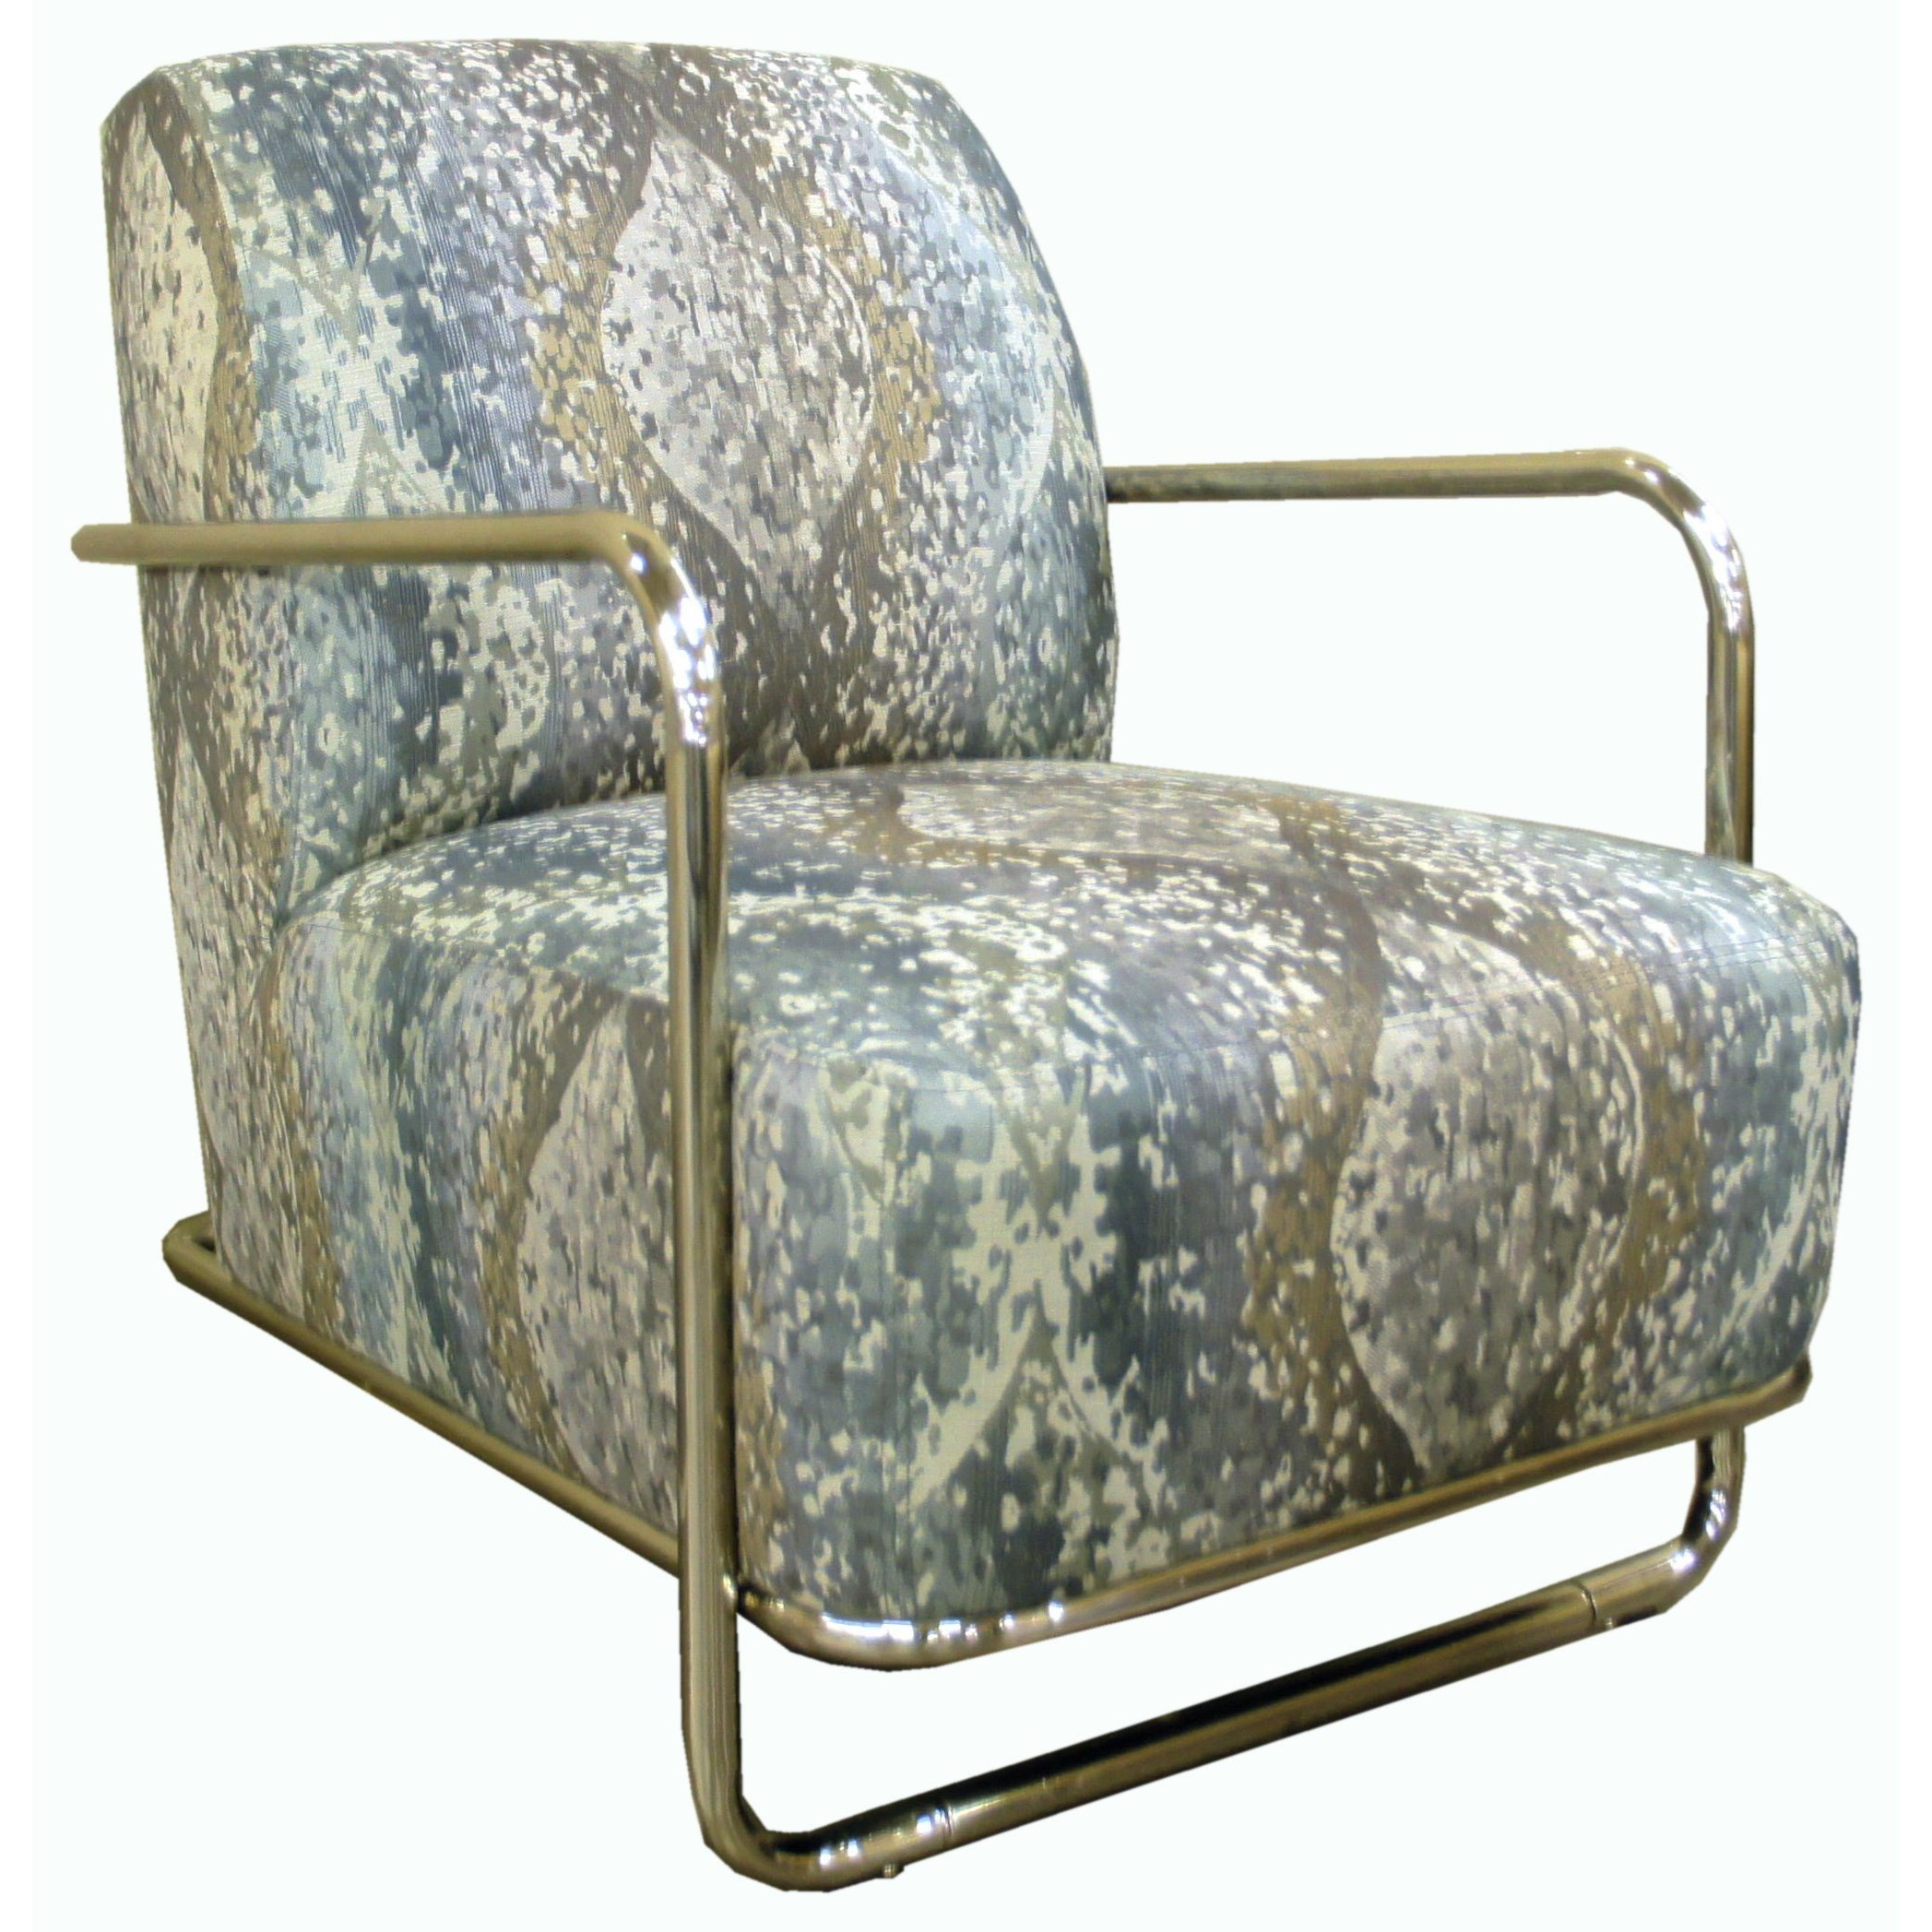 Jonathan Louis Accentuates Brushed Nickel Accent Chair - Item Number: 30657-Nextiri Sealion